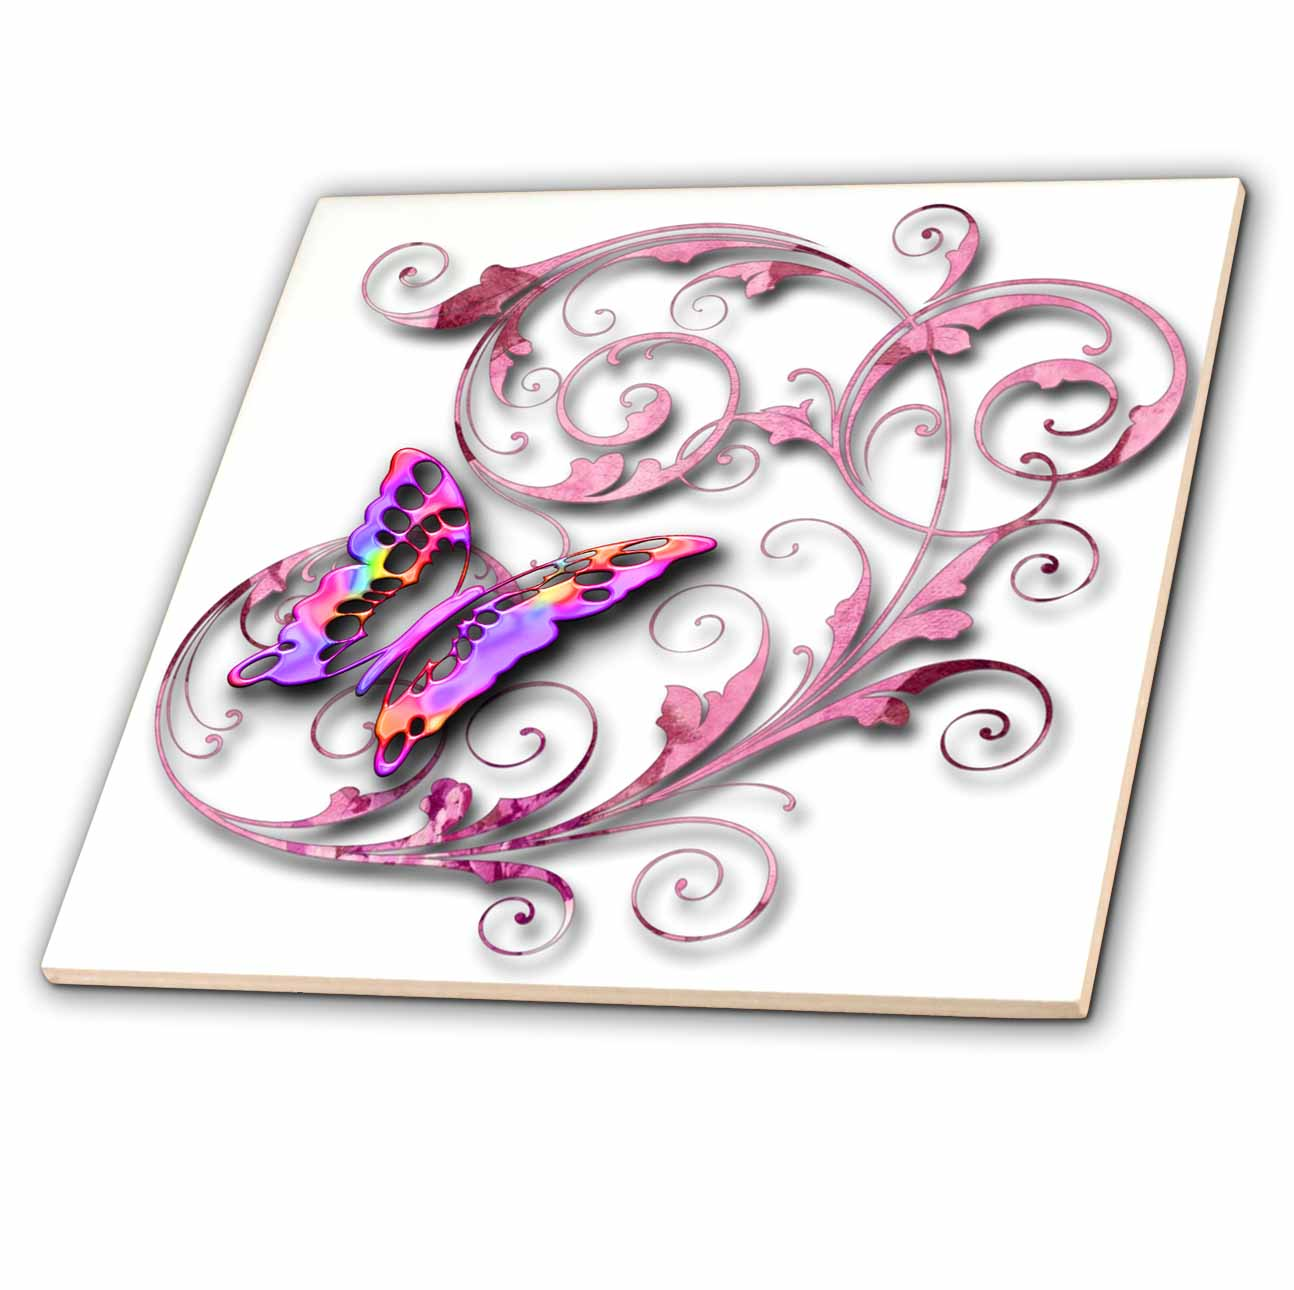 3dRose Golden accented vines and pretty multi colored butterfly - Ceramic Tile, 6-inch